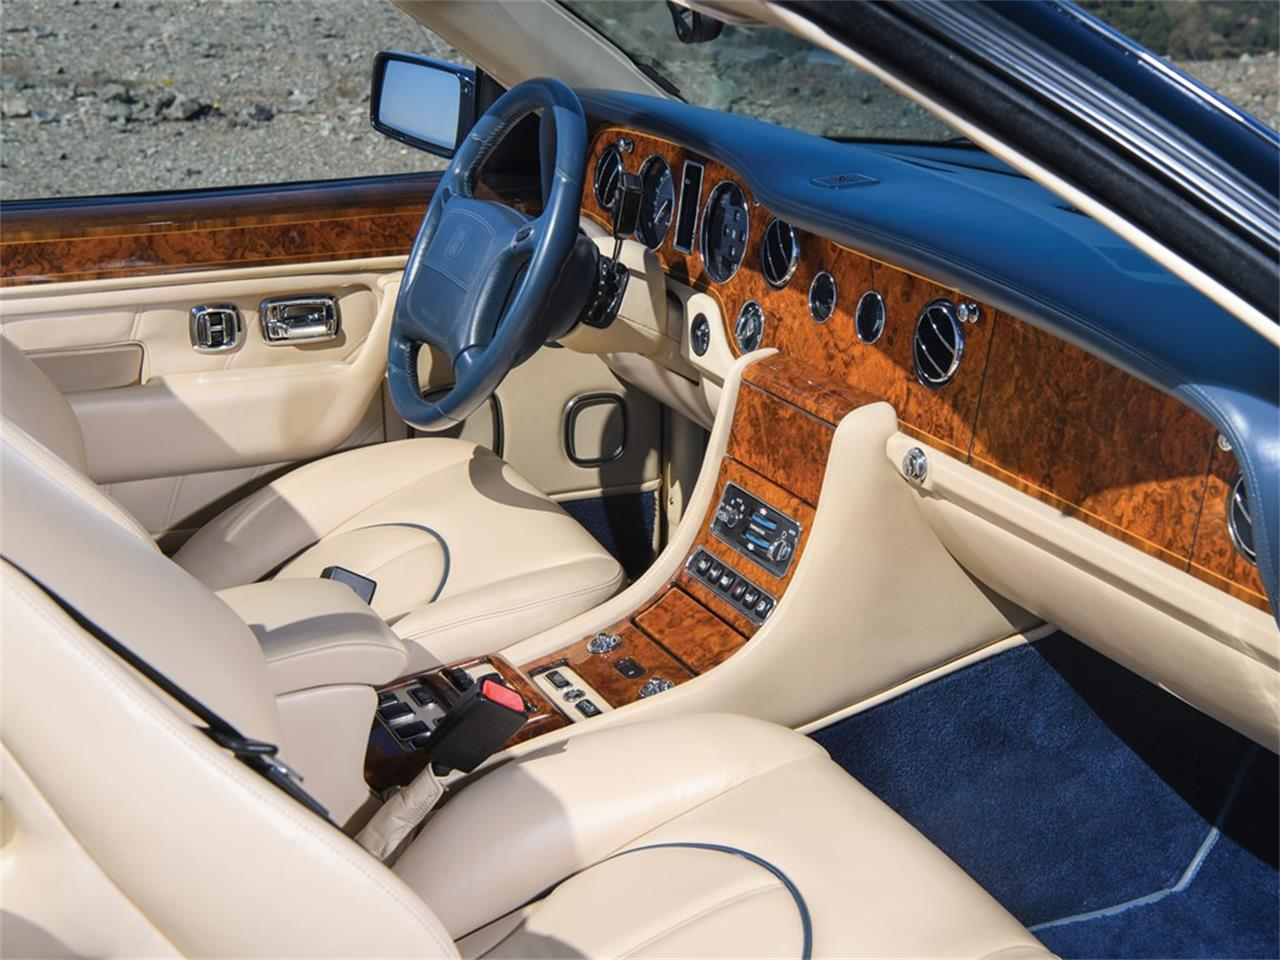 2000 Rolls-Royce Corniche for sale in Essen, Other – photo 4